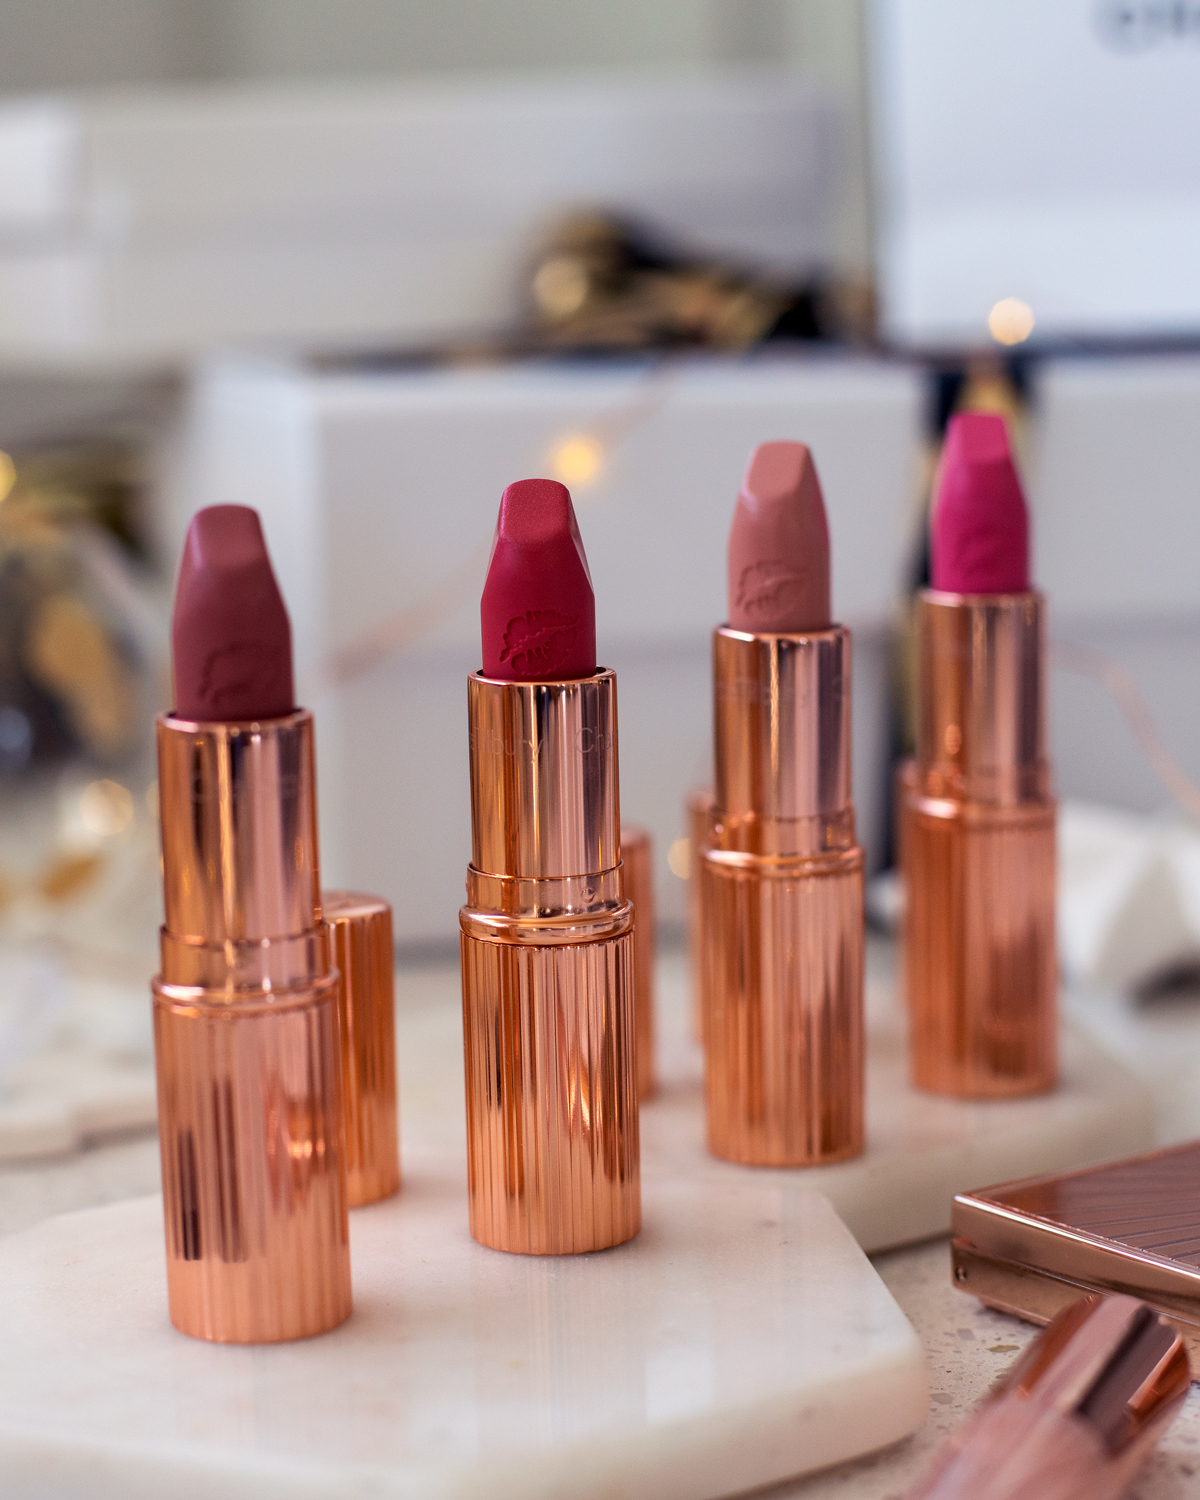 2018 Christmas gift guide Inspiring Wit blog featuring beauty gift ideas Charlotte Tilbury products lipsticks